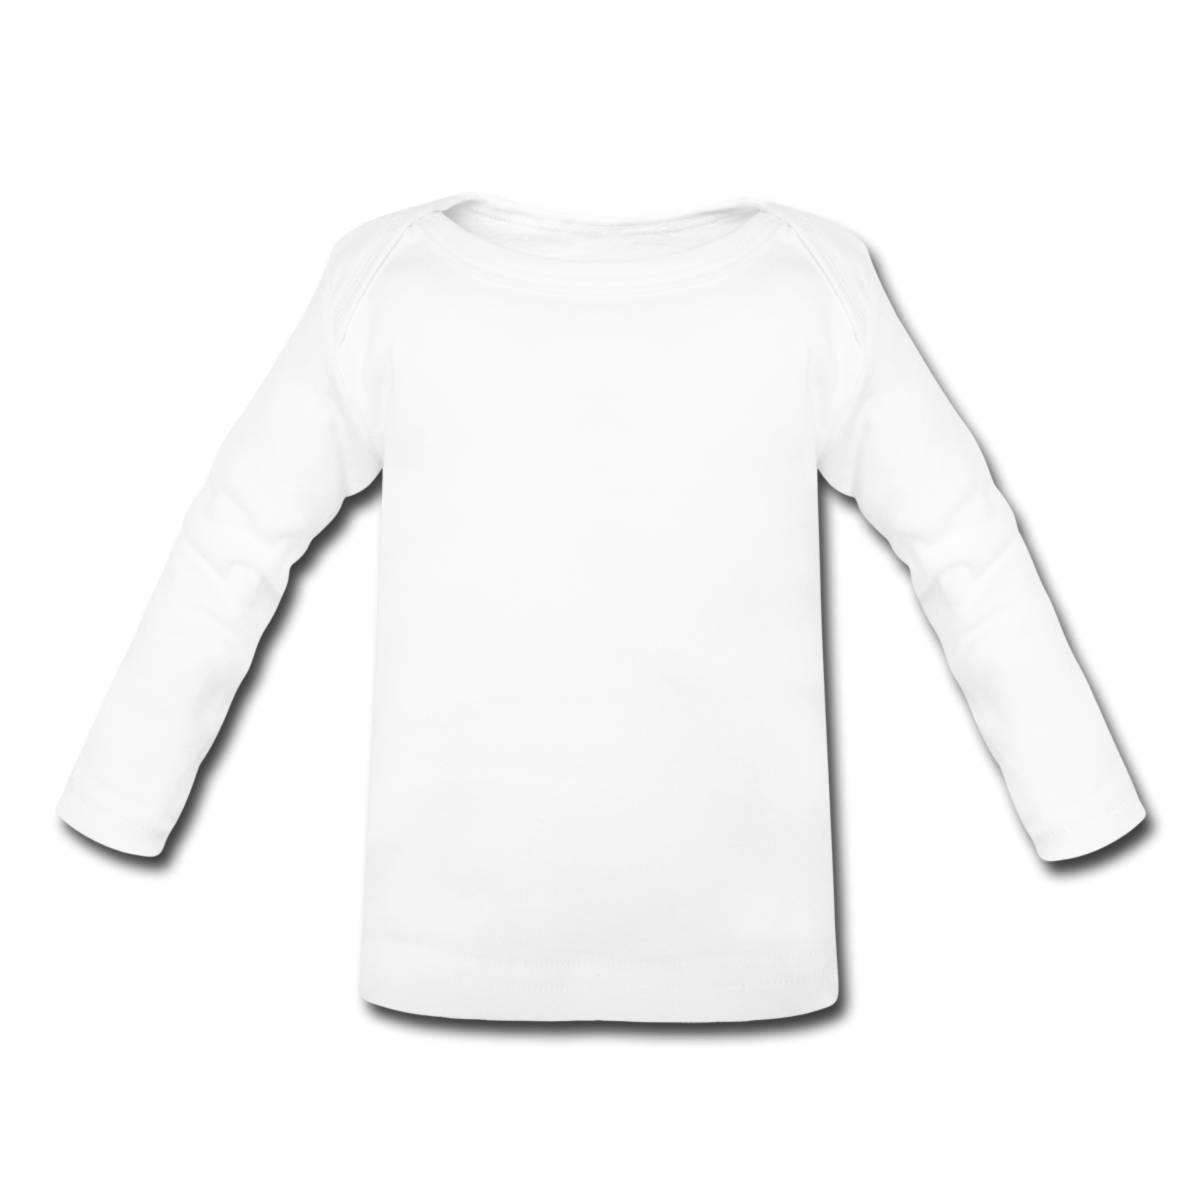 Pants clipart long sleeve shirt. Free blank sweaters cliparts